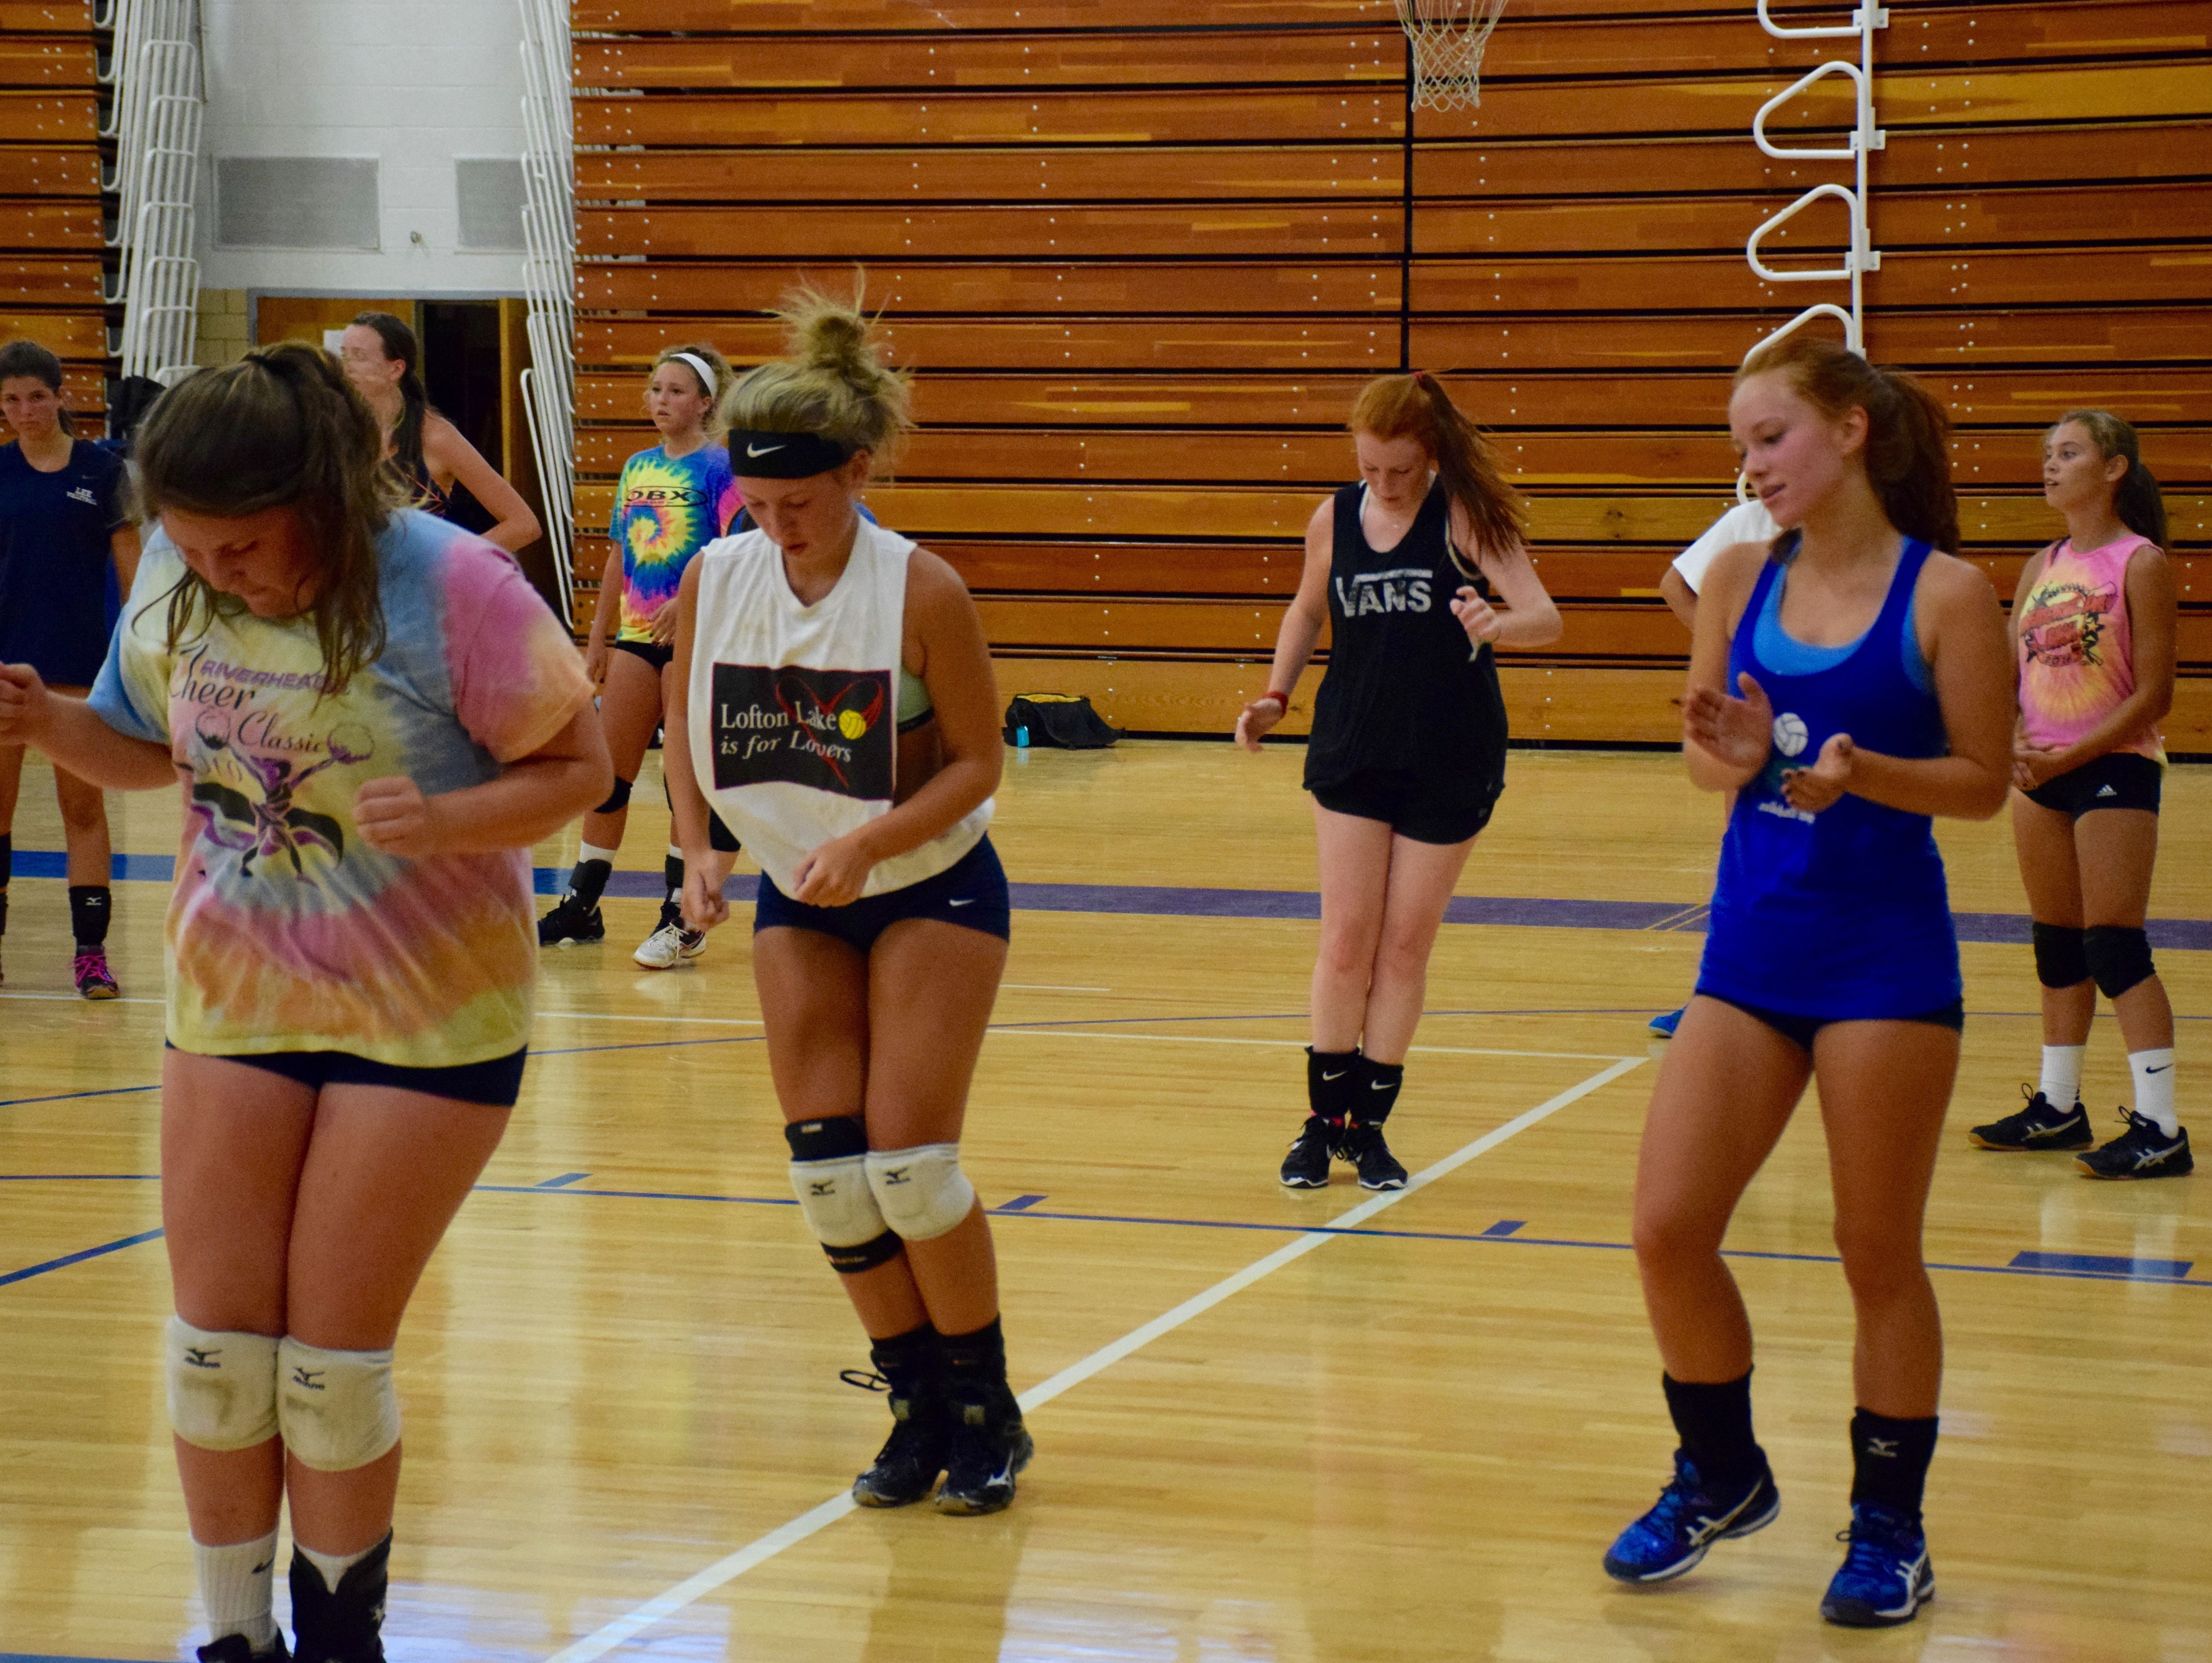 Robert E. Lee volleyball player Grace Warren, right, encourages other players during an agility drill at the first day of practice and tryouts for the Lee Ladies on Monday, Aug. 1, 2016, in Staunton.